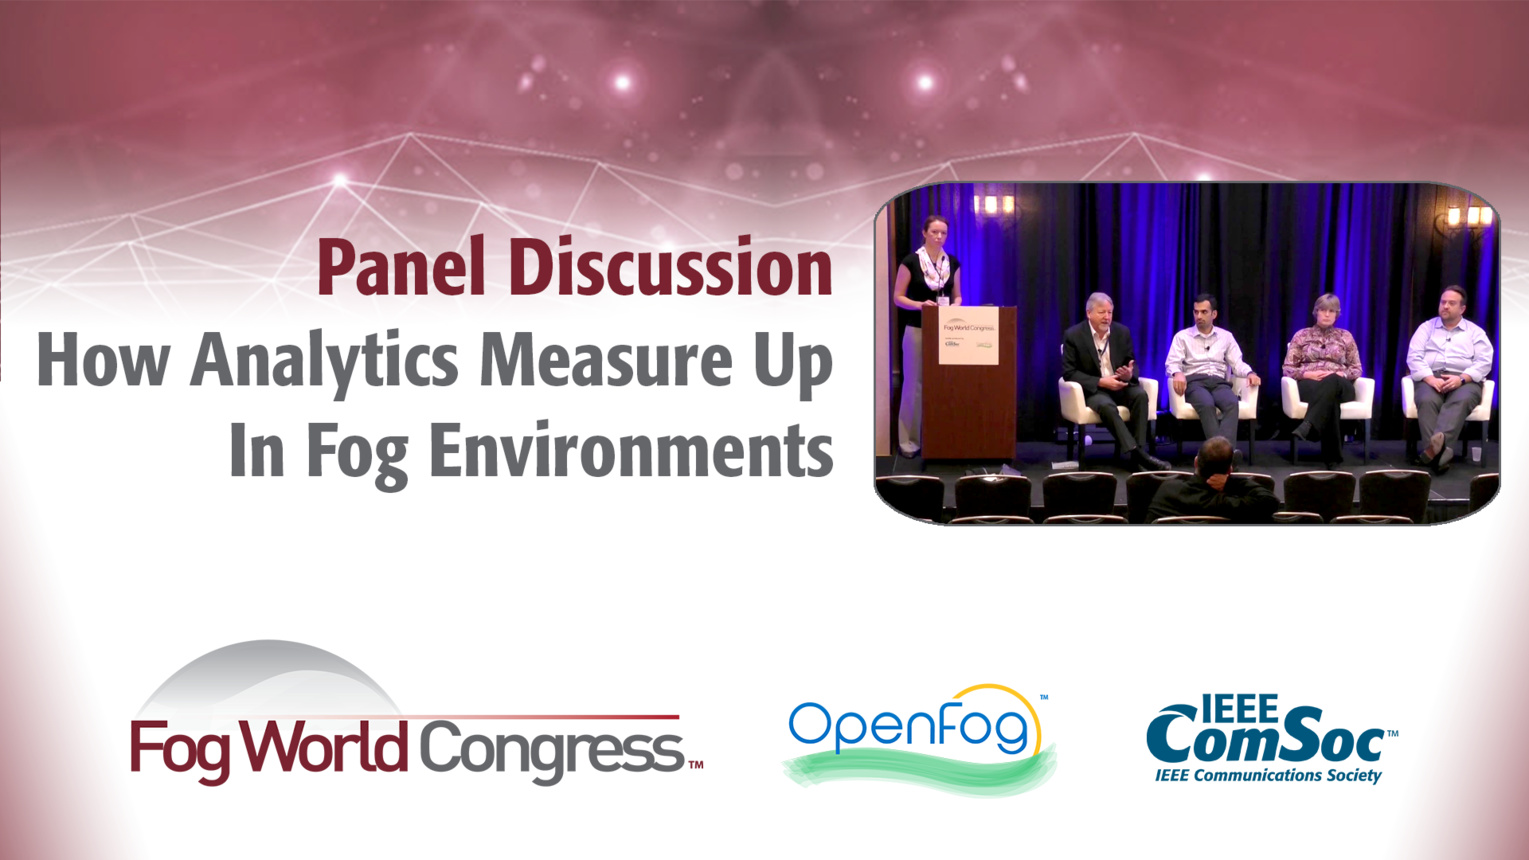 How Analytics Measure Up In Fog Environments - Panel Discussion - Fog World Congress 2017